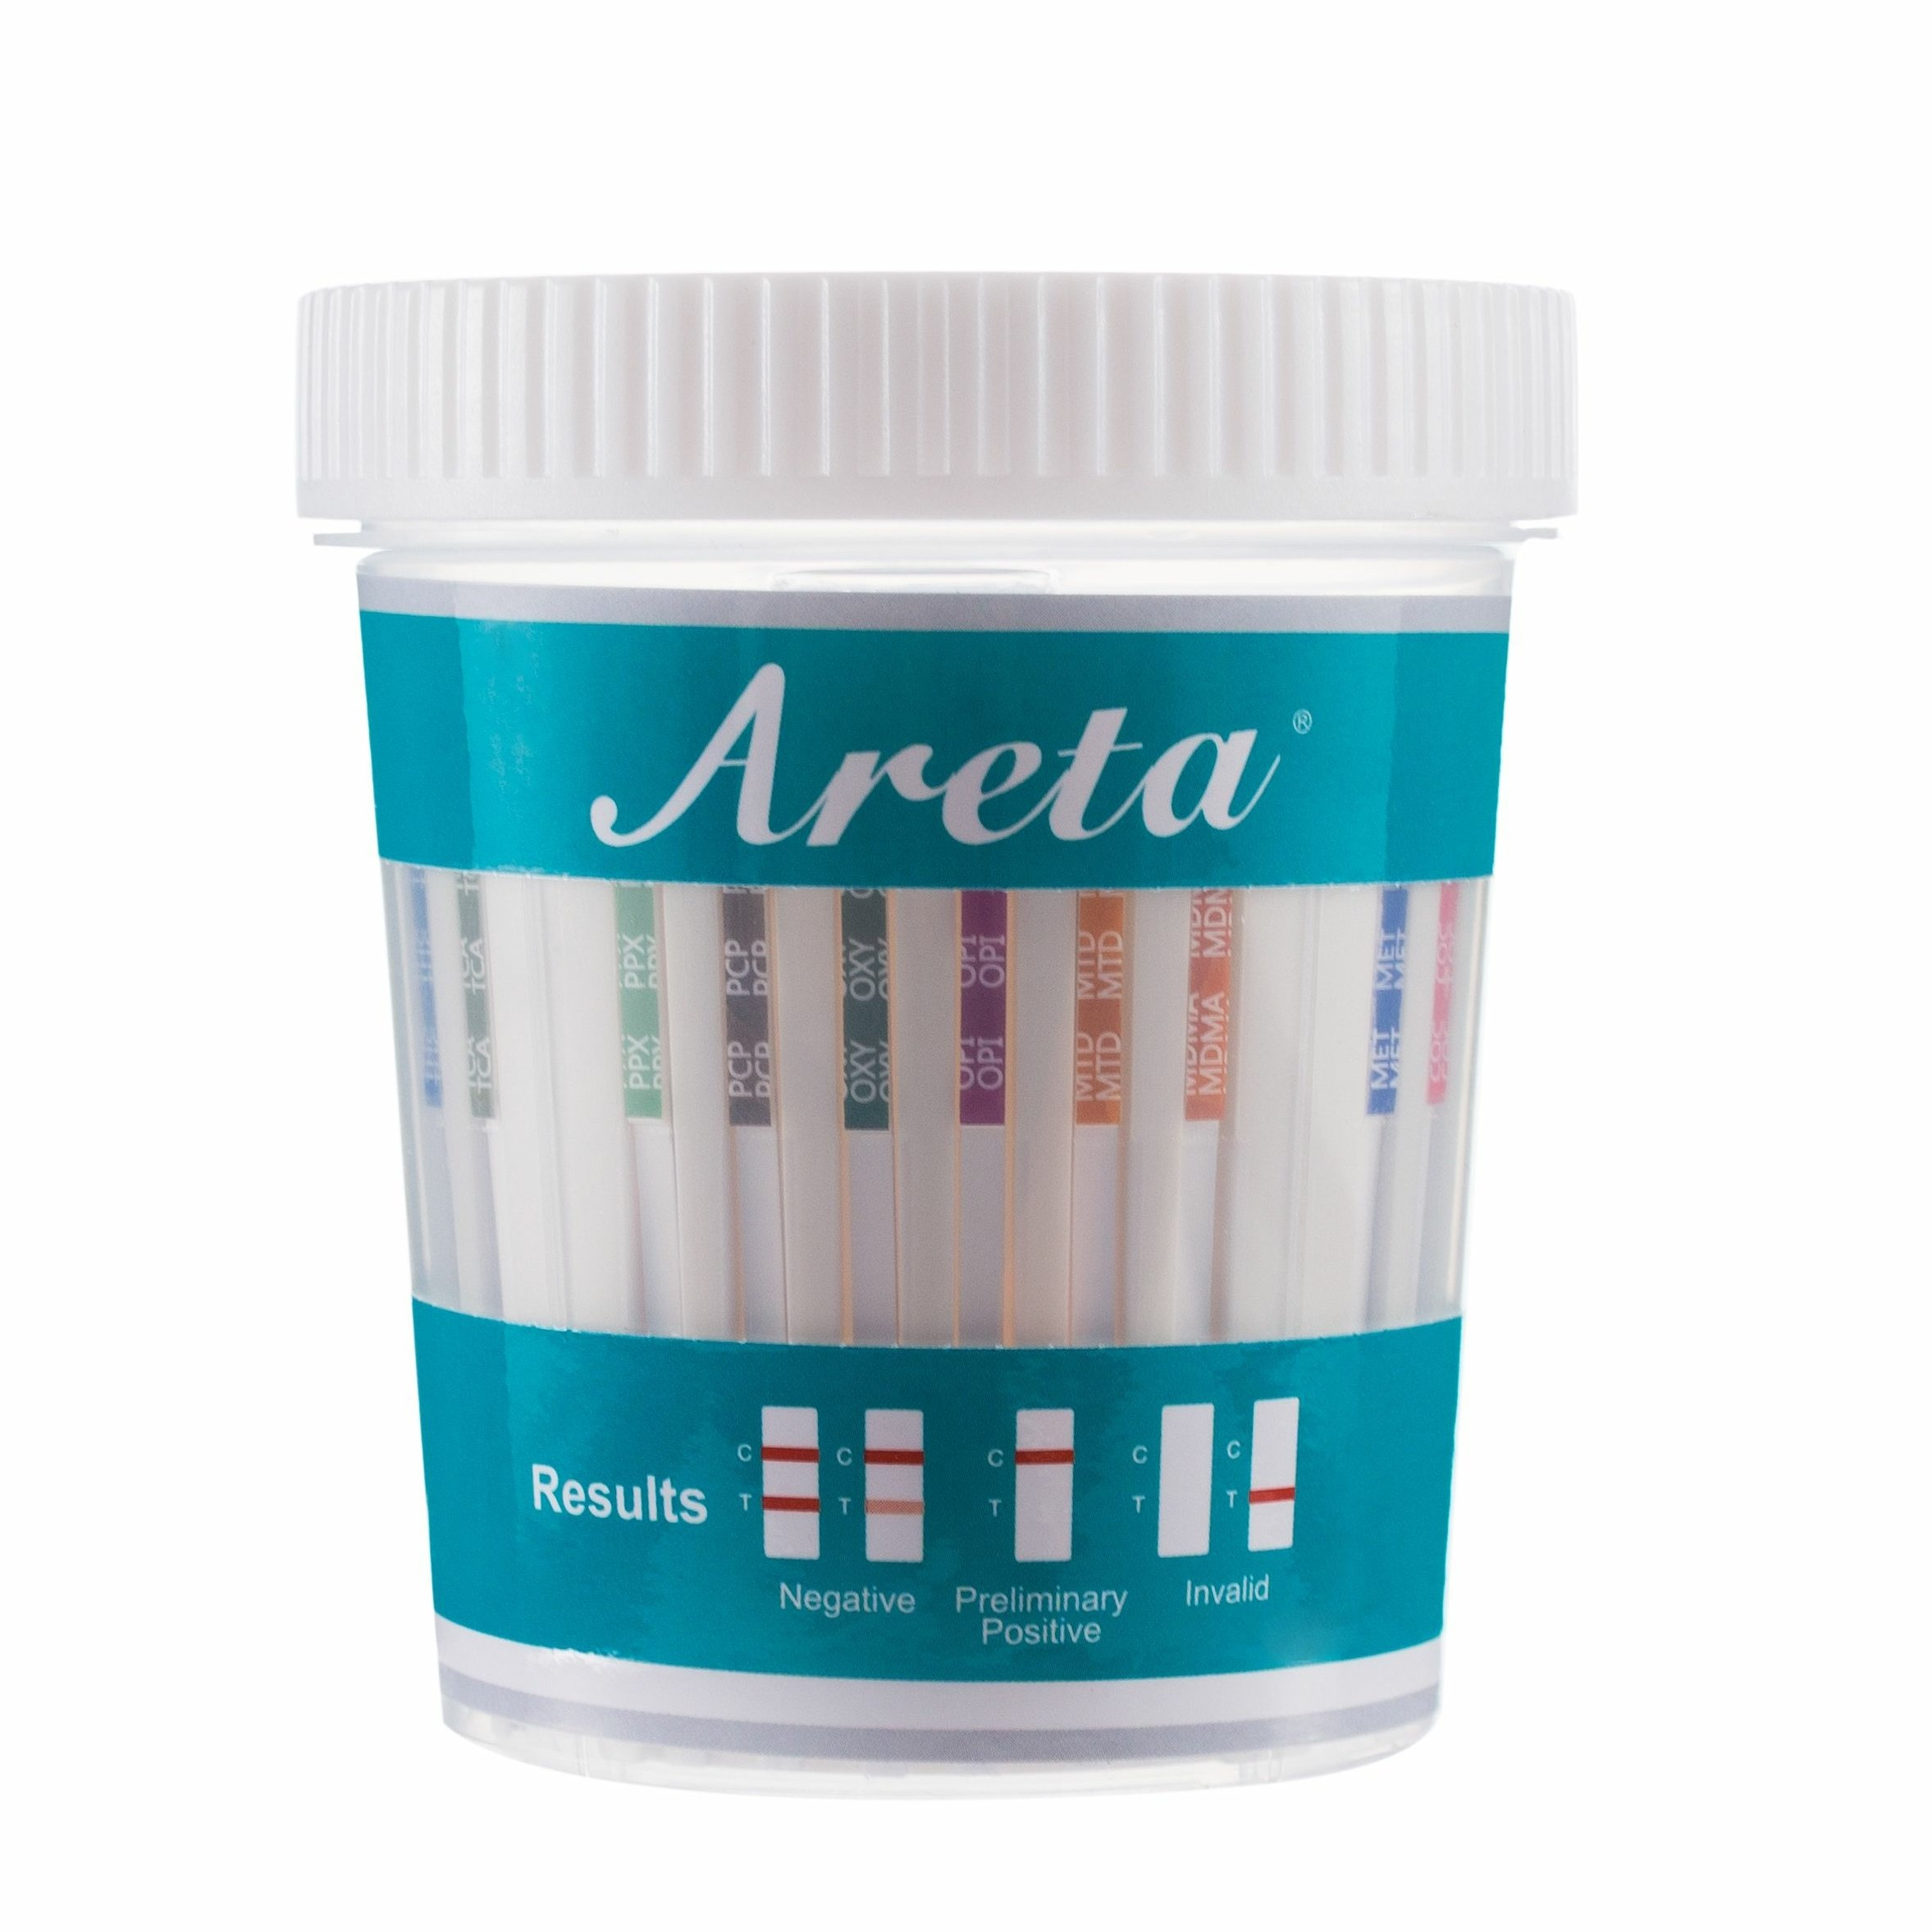 5 Pack Areta 14 Panel Drug Test Cup Kit With Temperature Strip, Instant Testing 14 Drugs Buprenorphine (BUP),THC,OPI 2000, AMP,BAR,BZO,COC,MET,MDMA,MTD,OXY,PCP,PPX,TCA-#ACDOA-1144 (5 Tests)